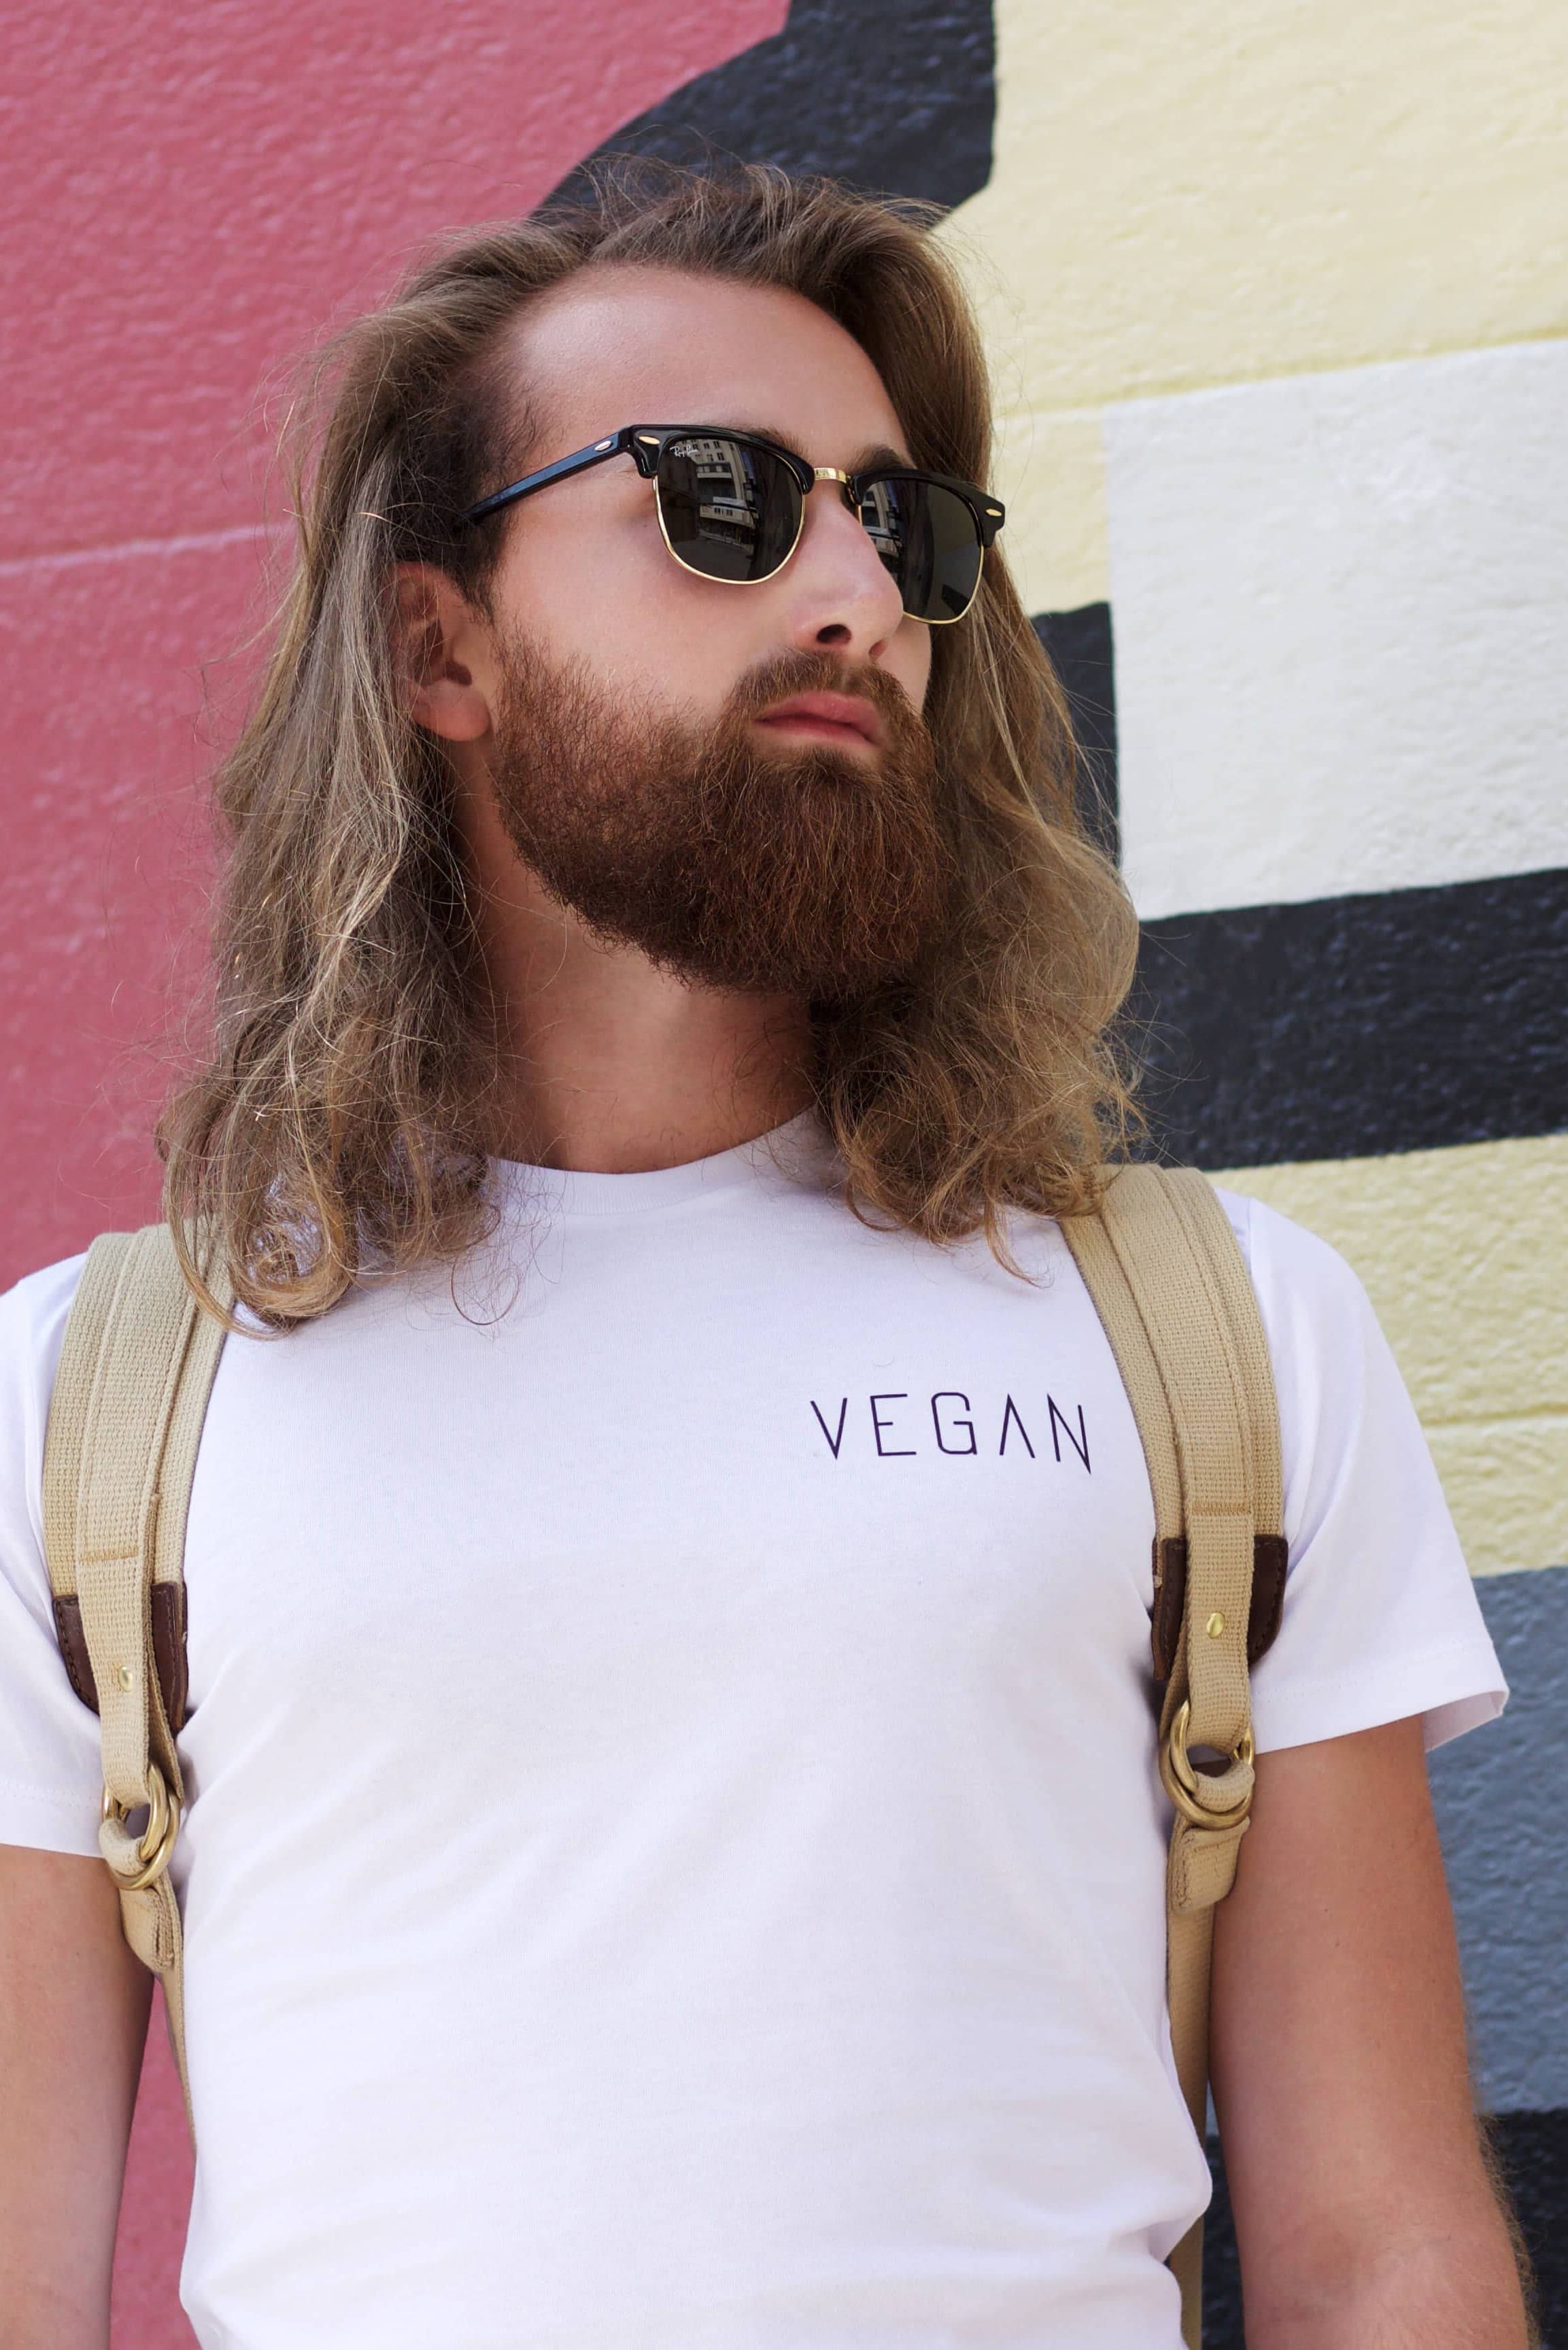 Vegan • T-shirt